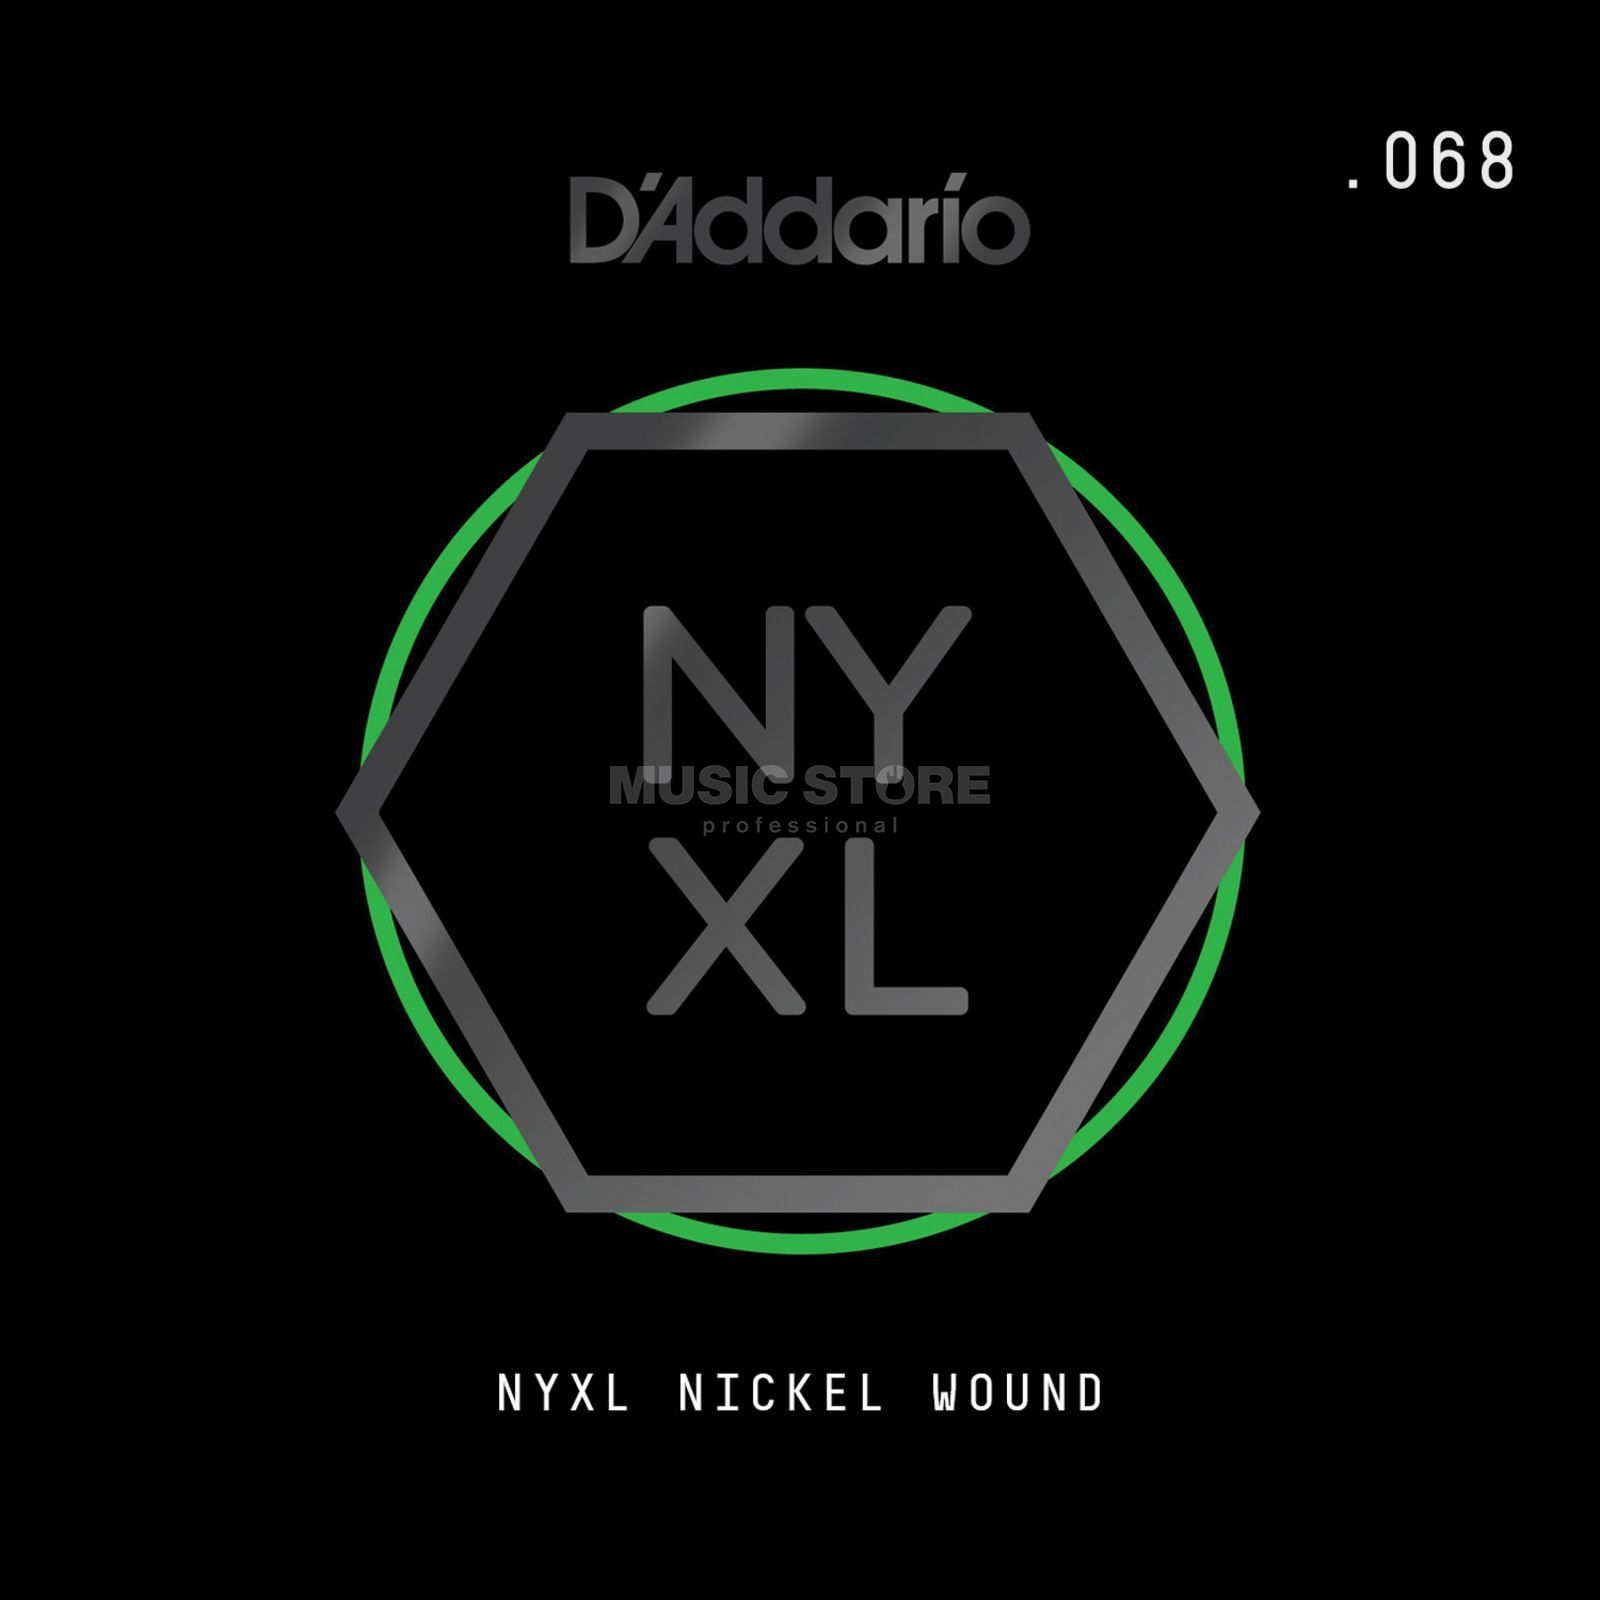 D'Addario NYNW068 Single String Nickel Wound Imagem do produto